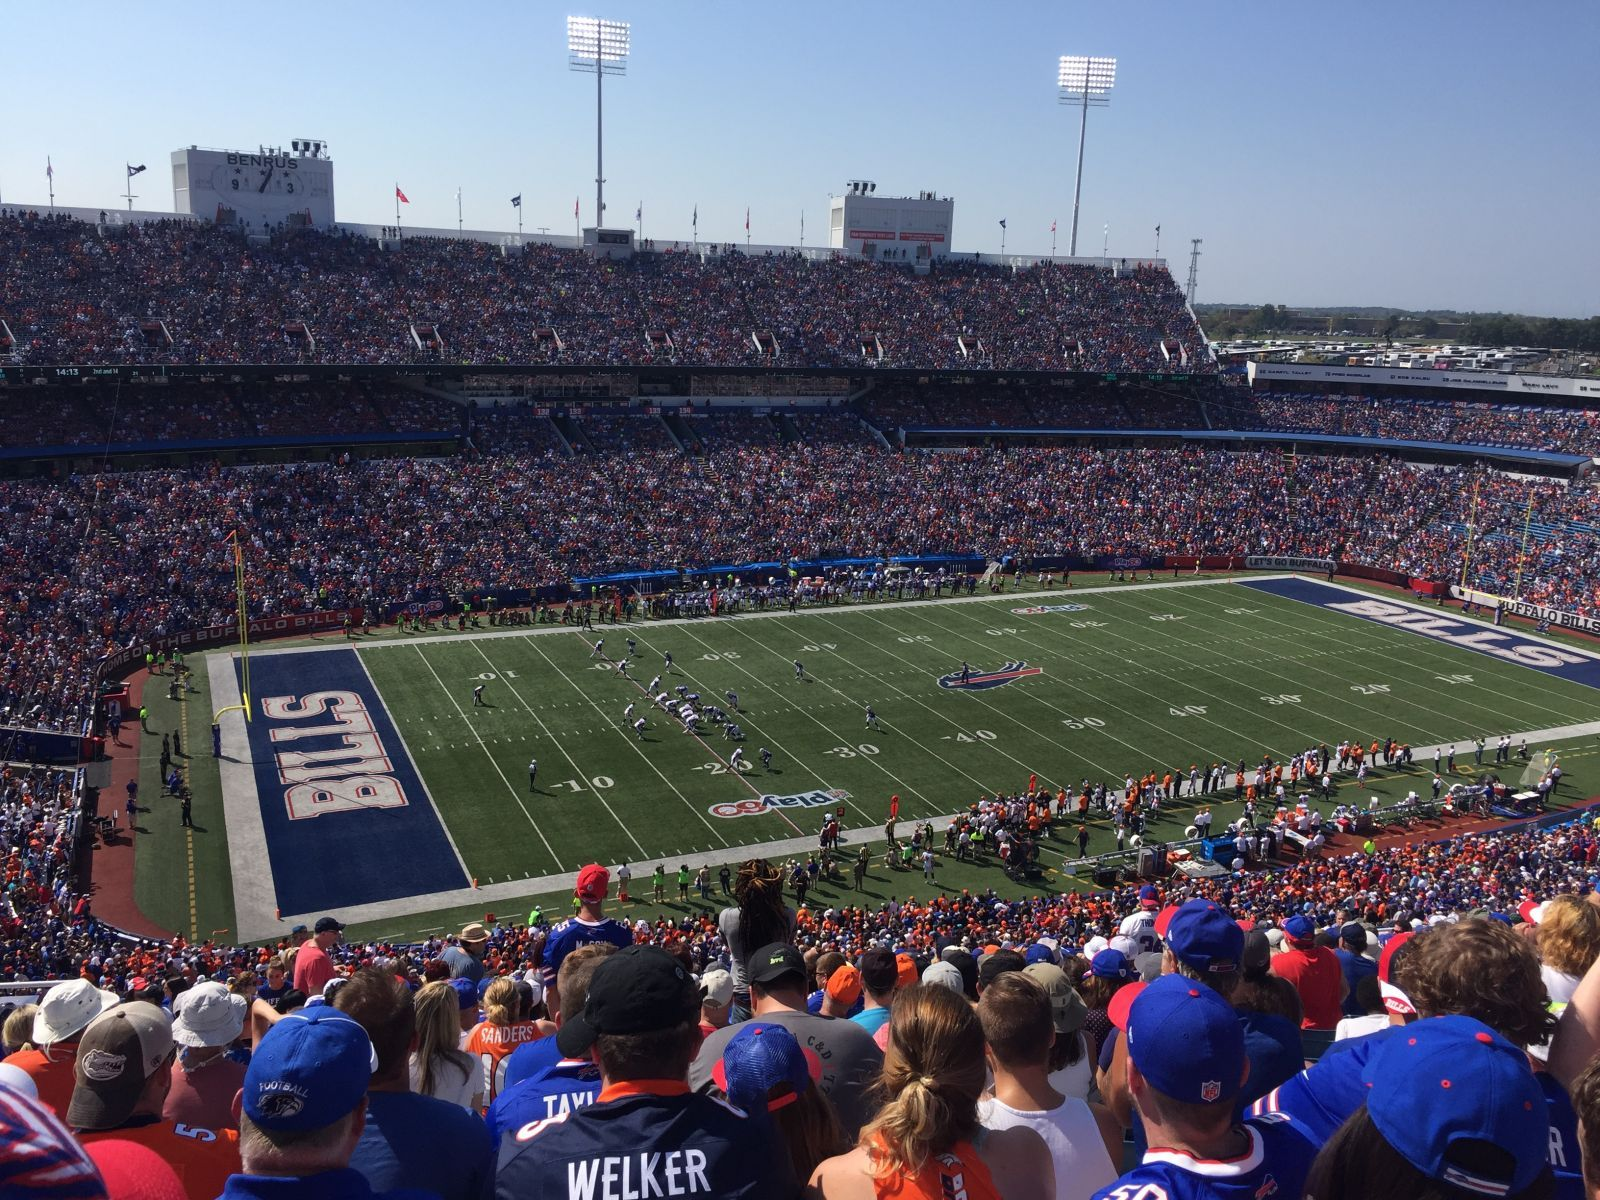 Section 315 seat view